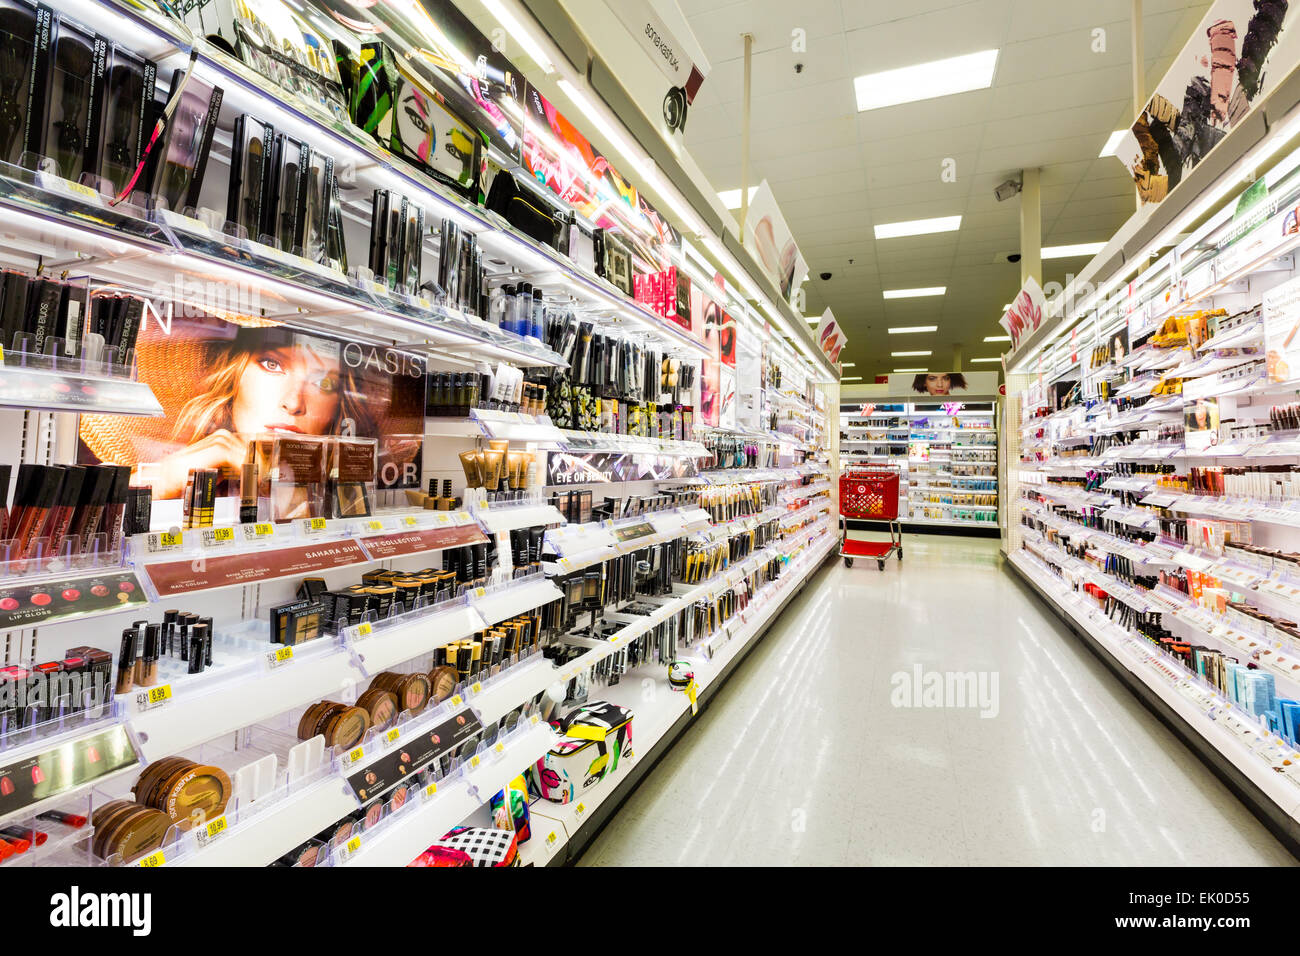 Shelves with cosmetics in a Target store - Stock Image